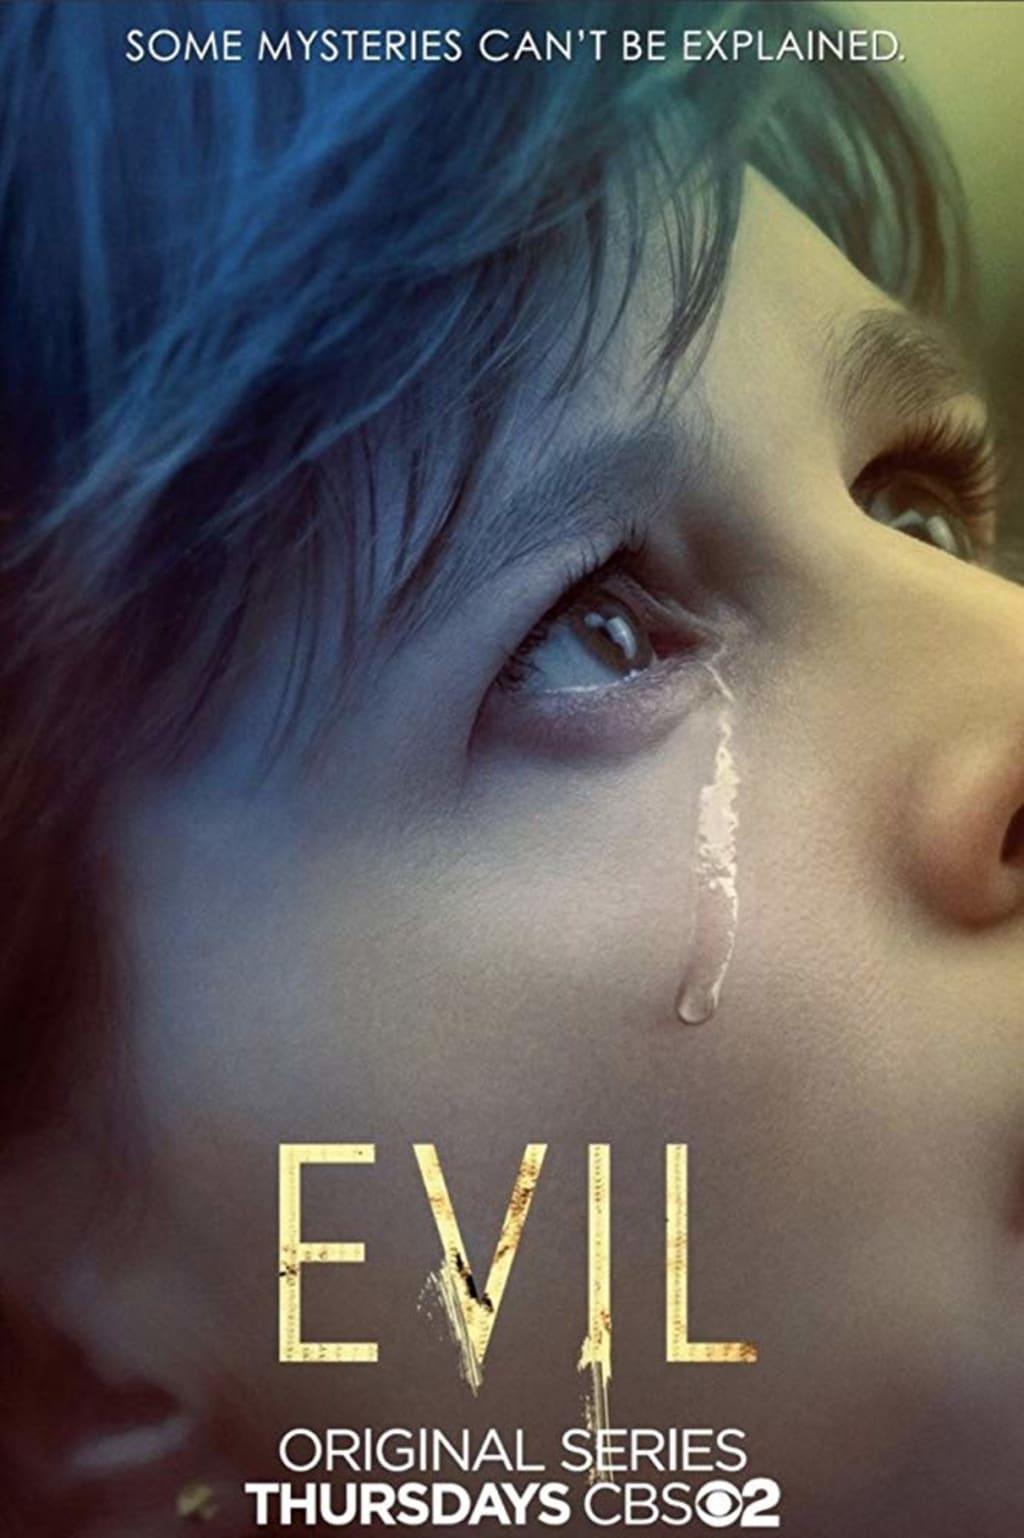 Review of 'Evil' 1.1